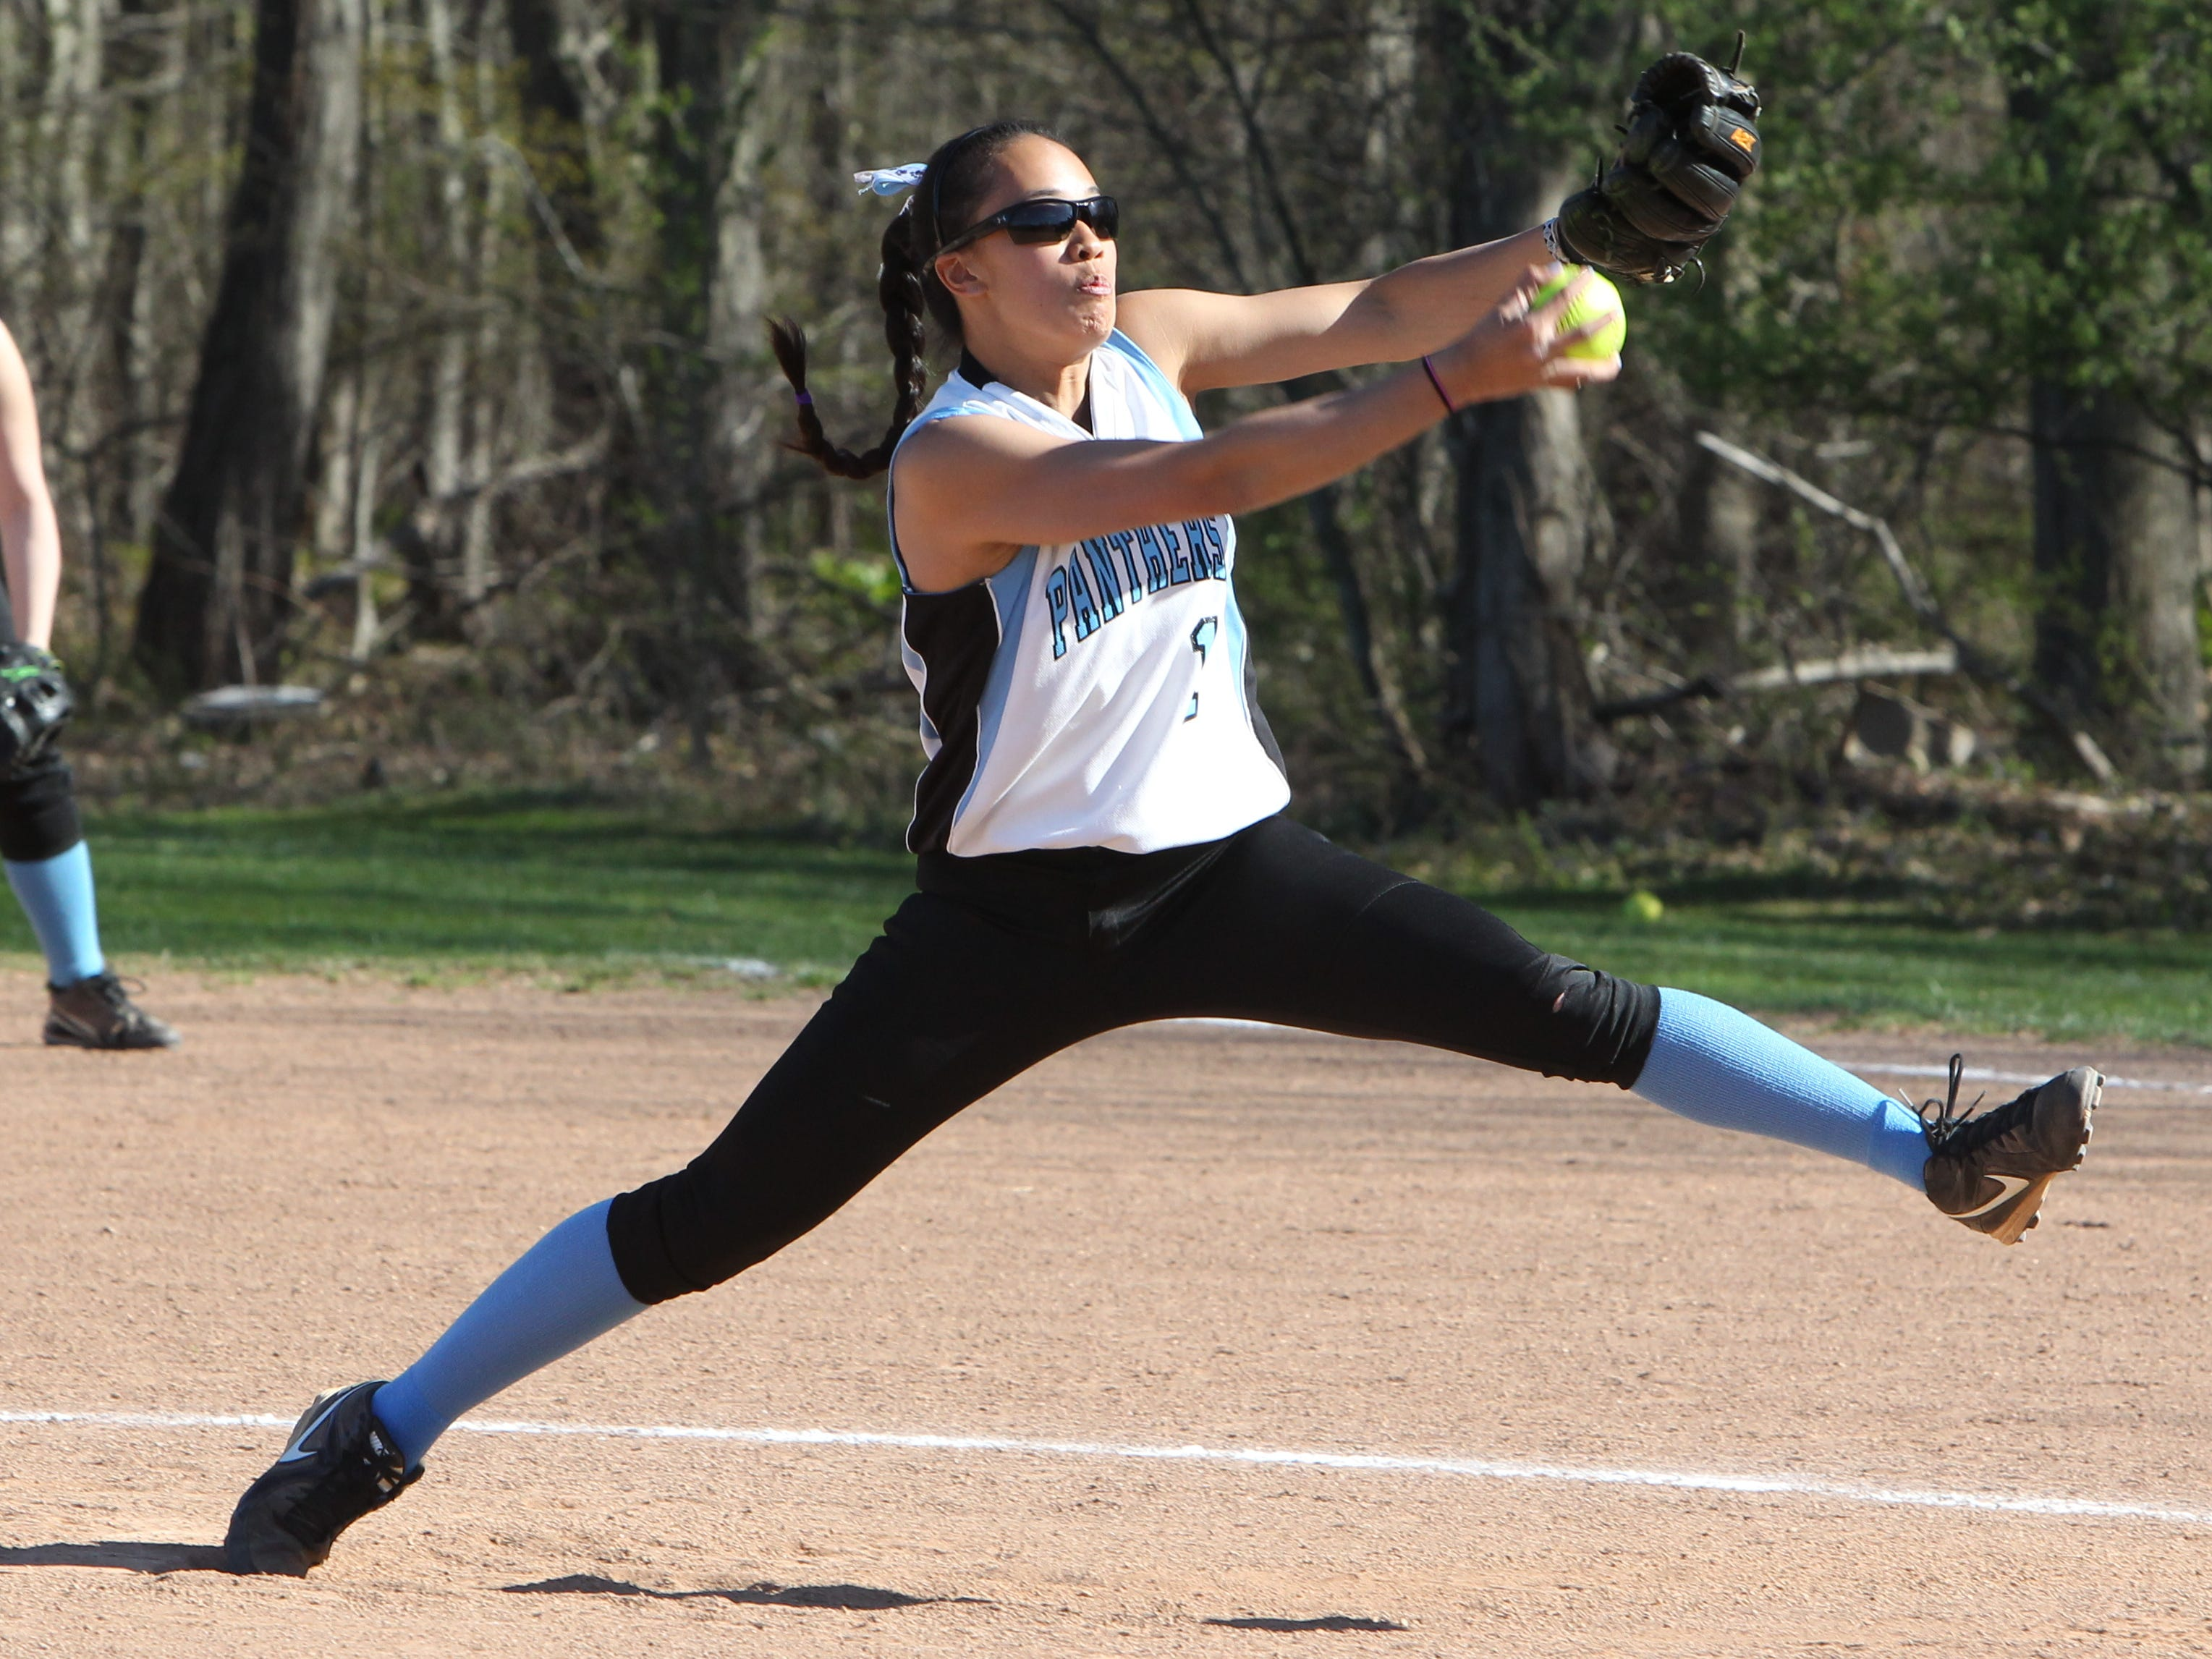 Rye Neck pitcher Diana King winds up during a game with Ardsley at Rye Neck April 28, 2015. Ardsley won 1-0.